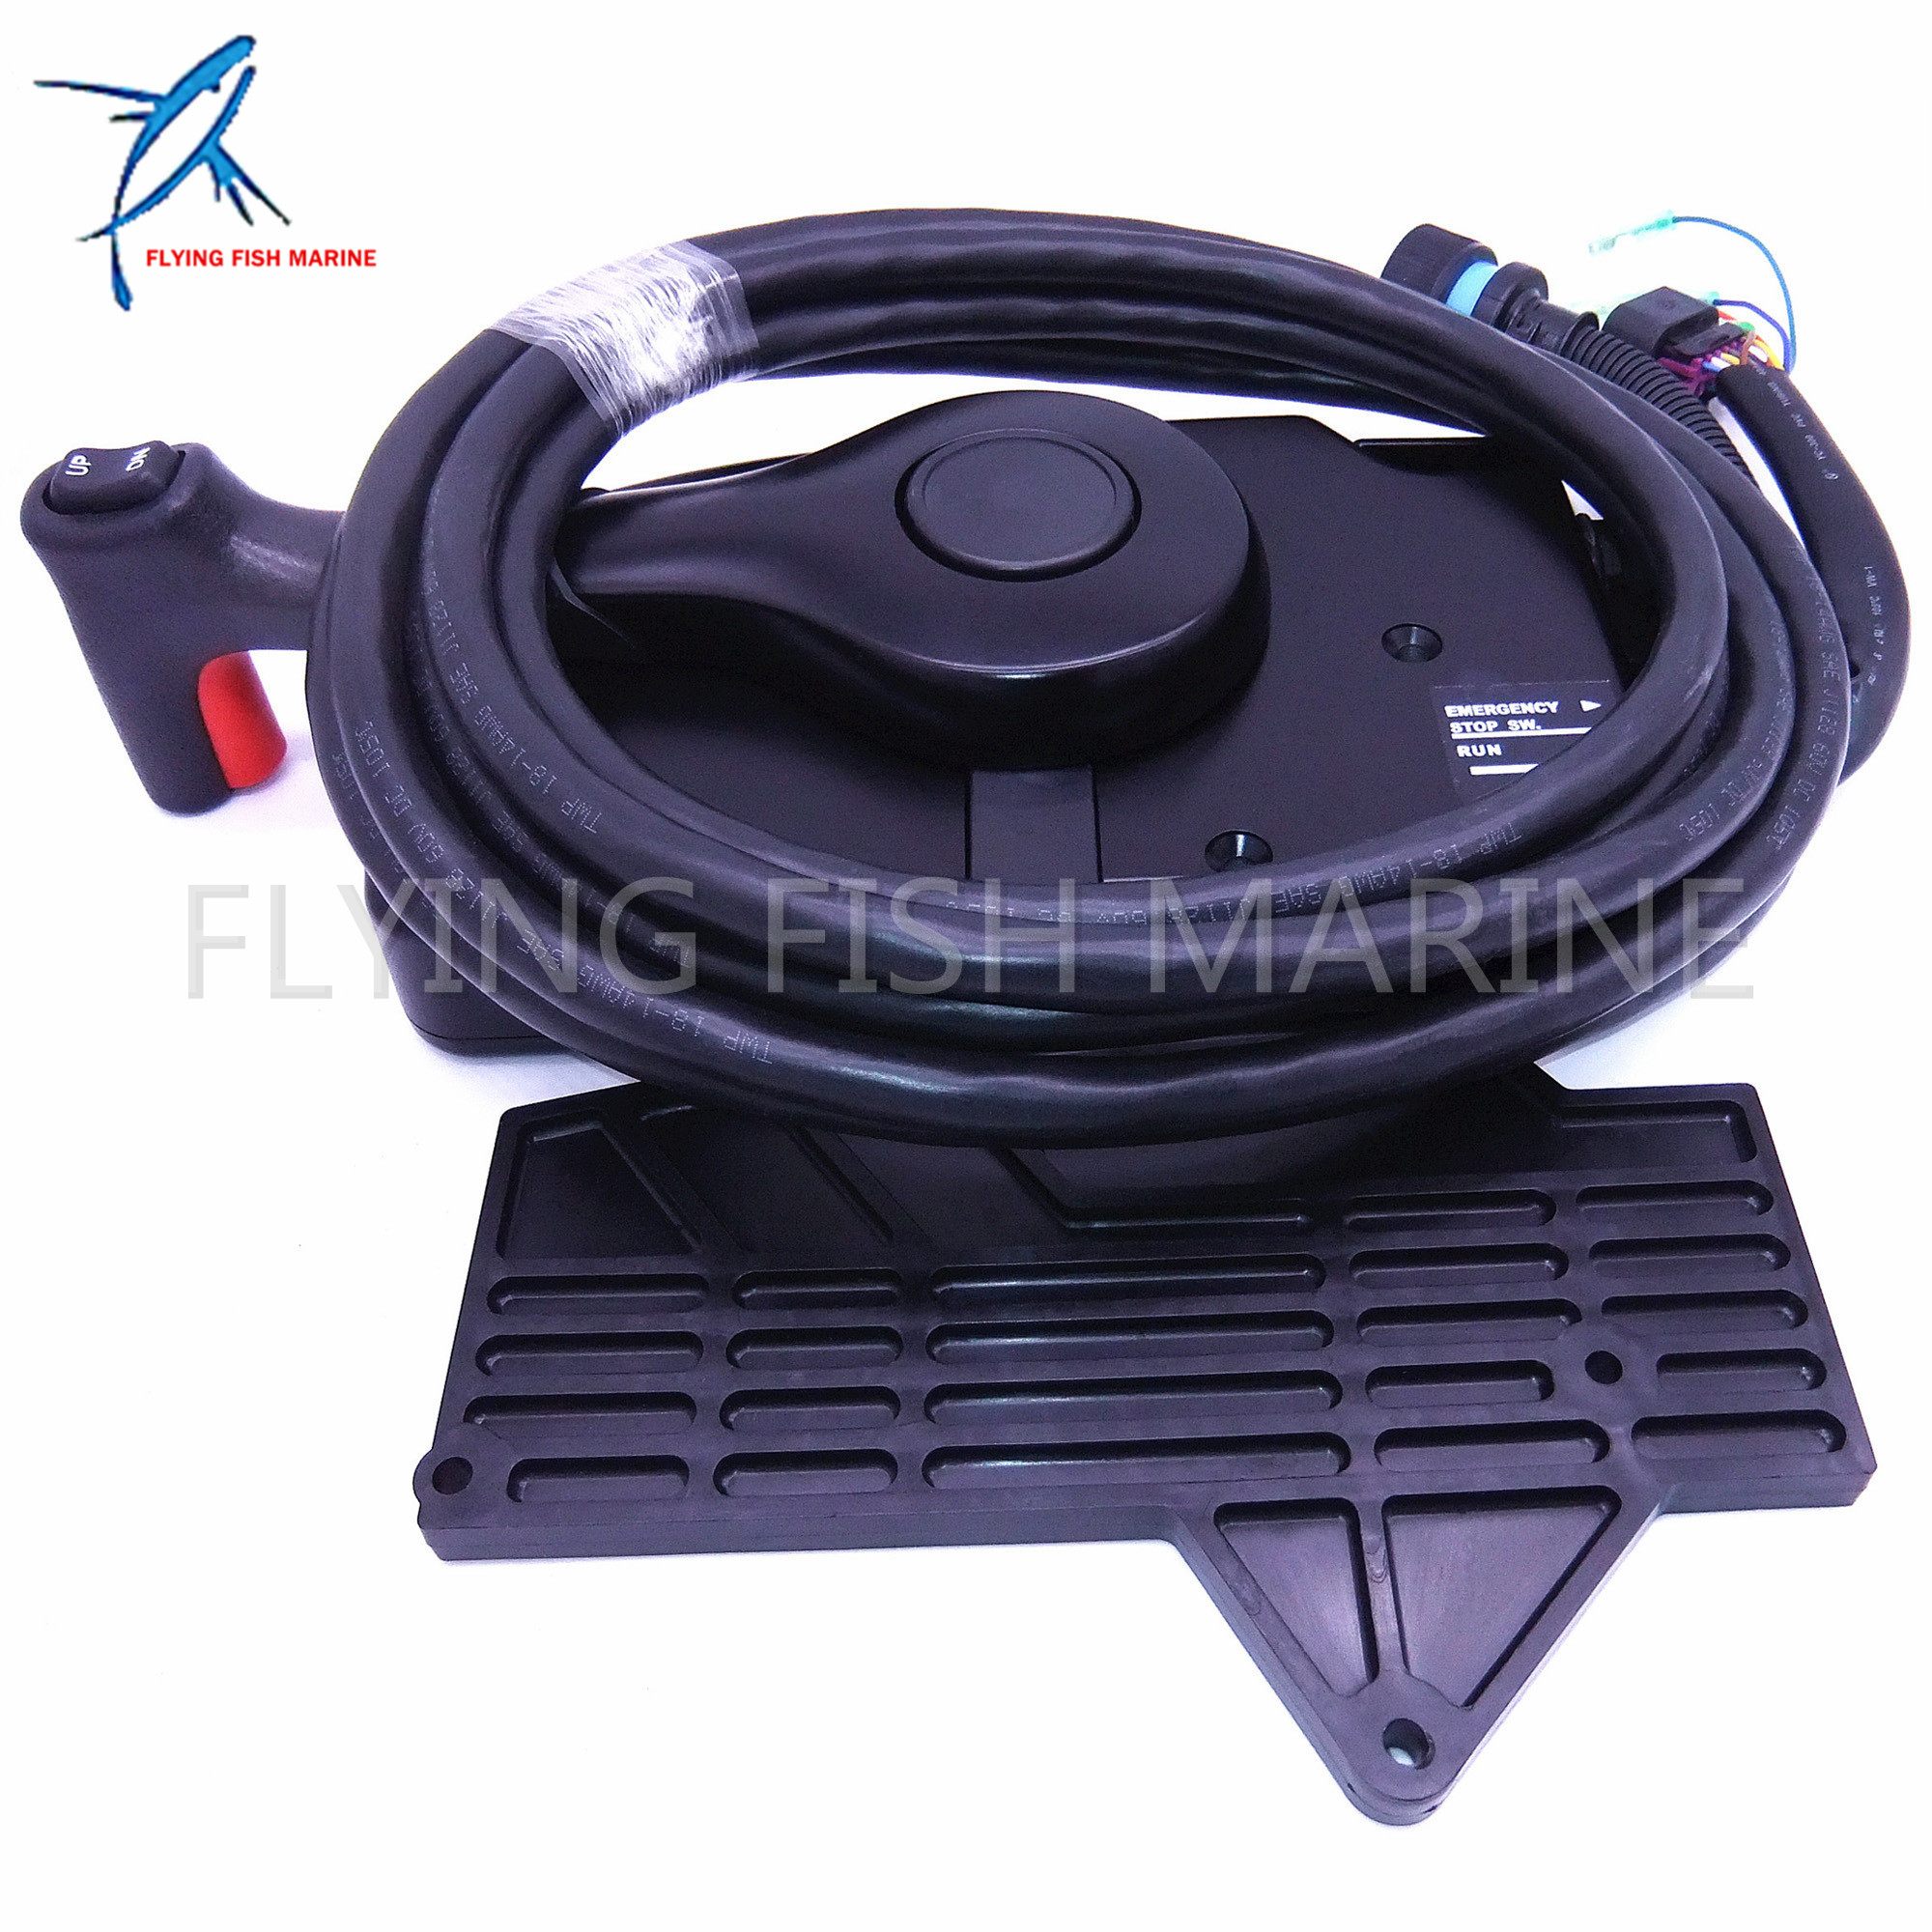 Boat Motor Side Mount Remote Control Box 881170A13 With 14 Pin for Mercury Outboard Engine 14